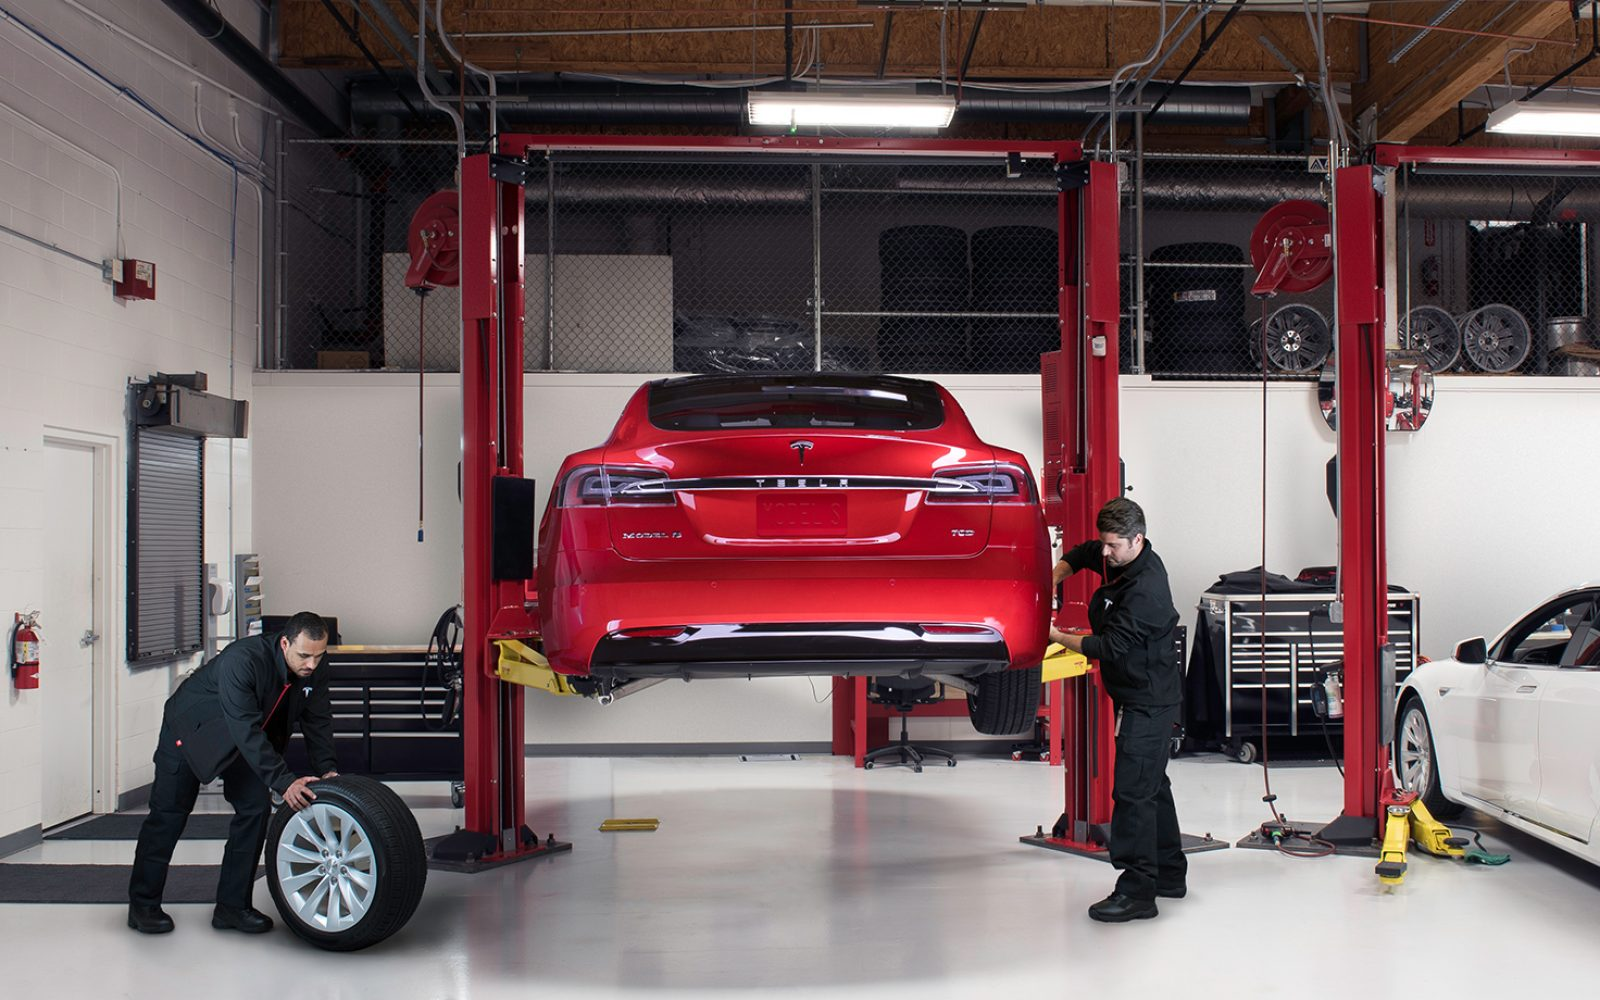 Tesla is working on opening up its service tools and helping